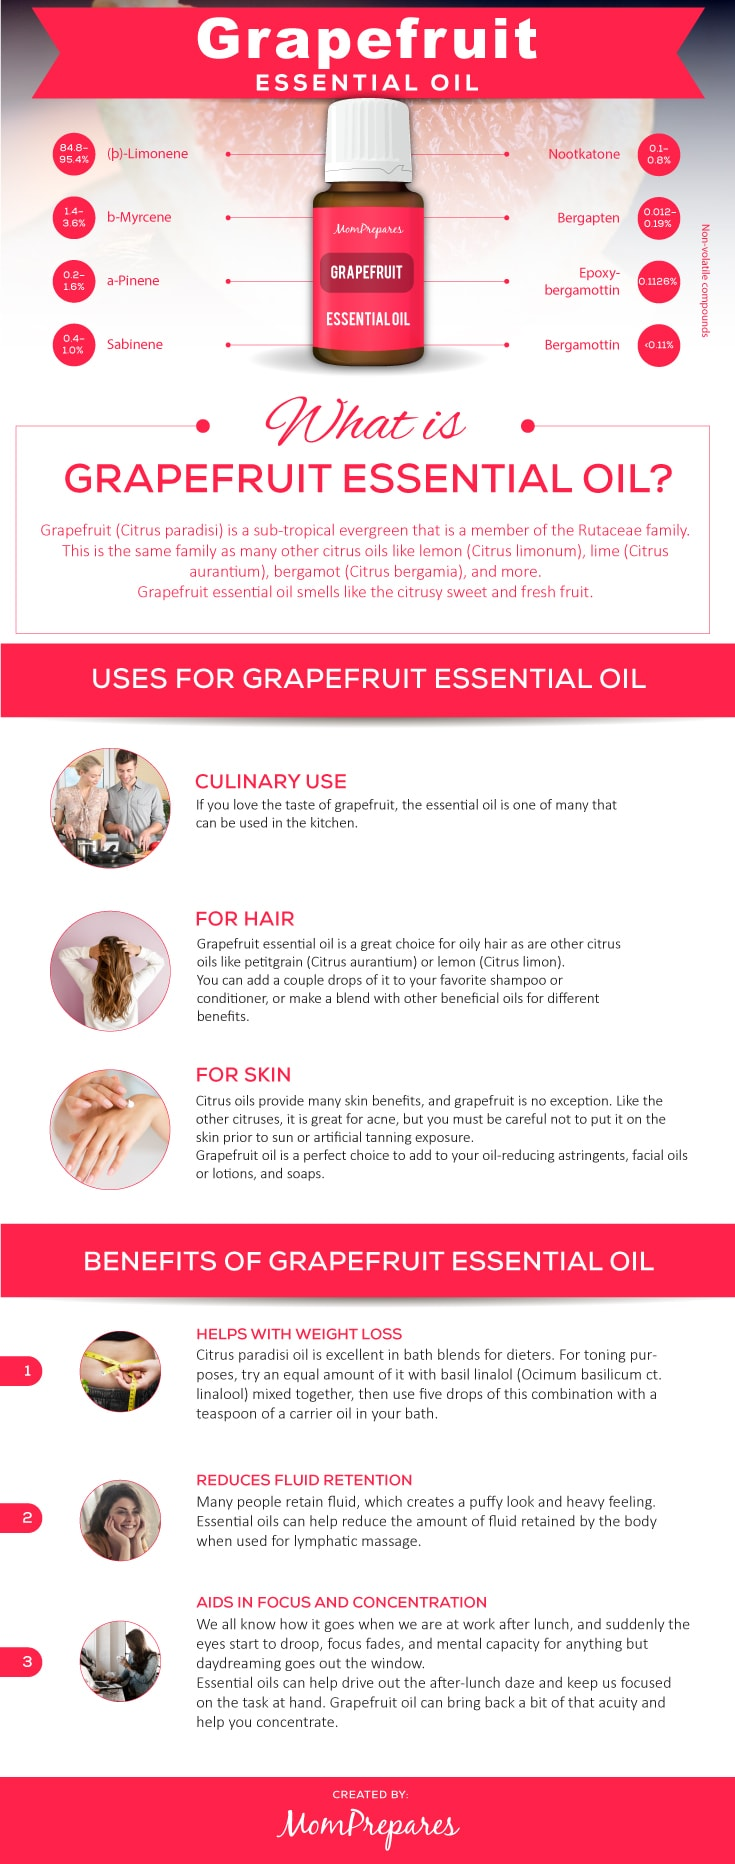 Grapefruit Essential Oil The Complete Uses And Benefits Guide